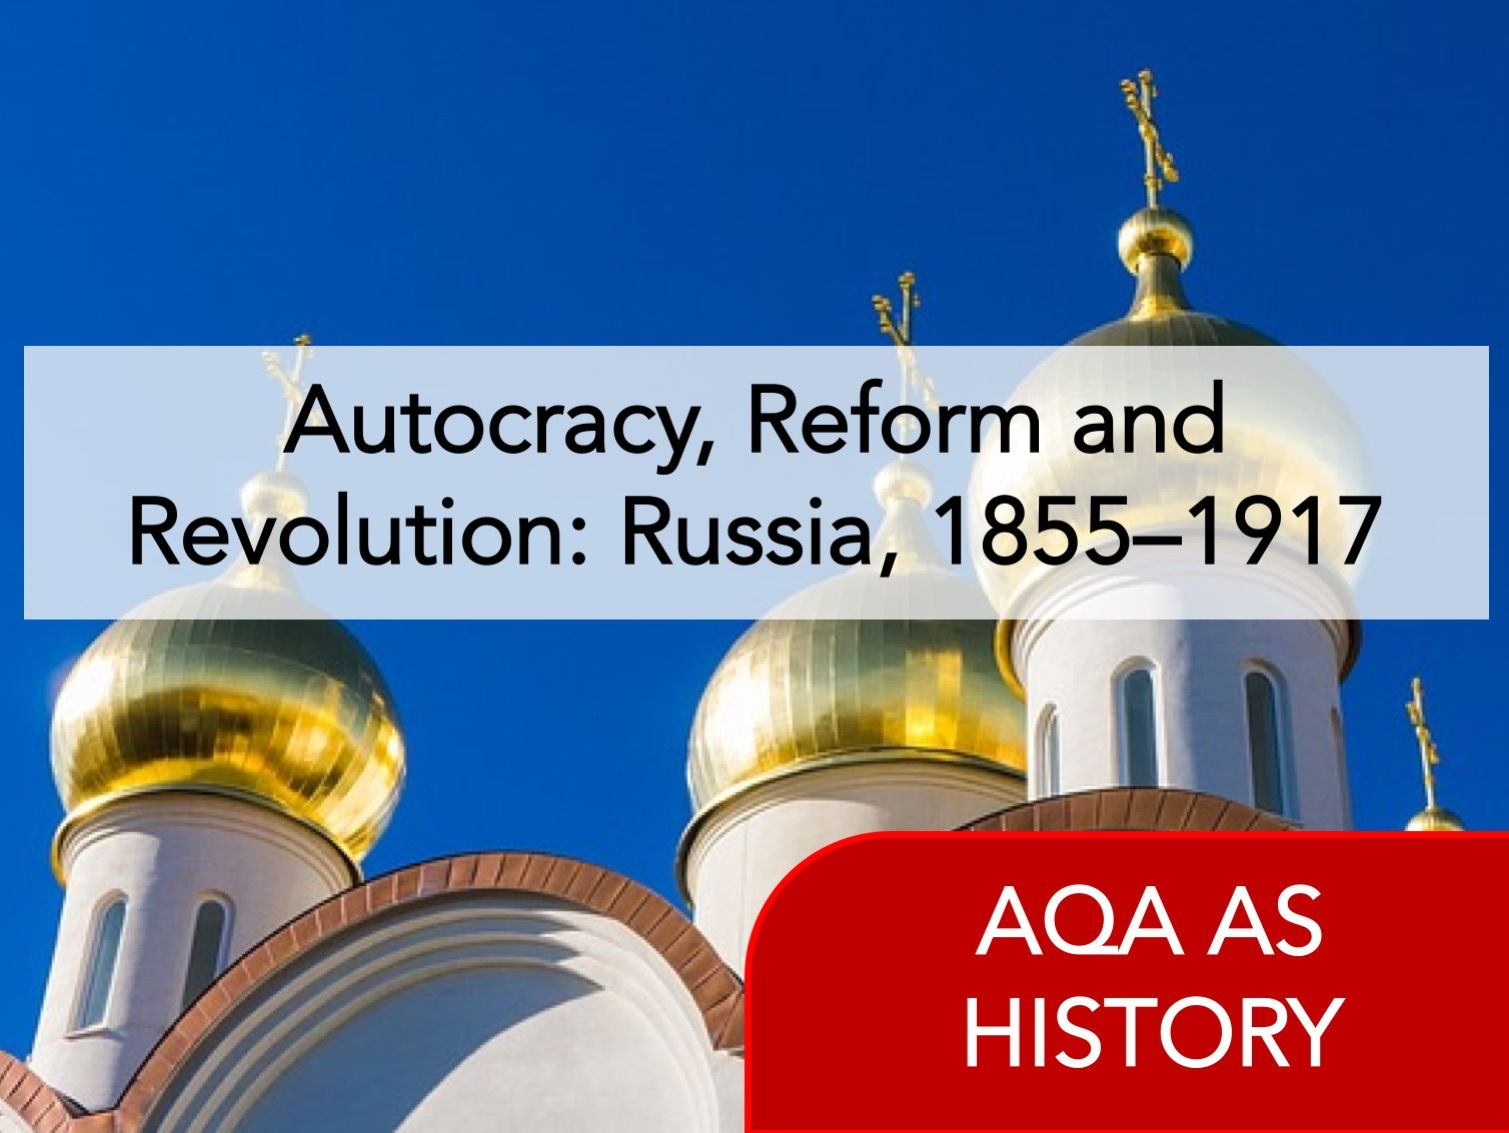 AQA History - Autocracy, Reform and Revolution: Russia, 1855–1917 [Whole Course]